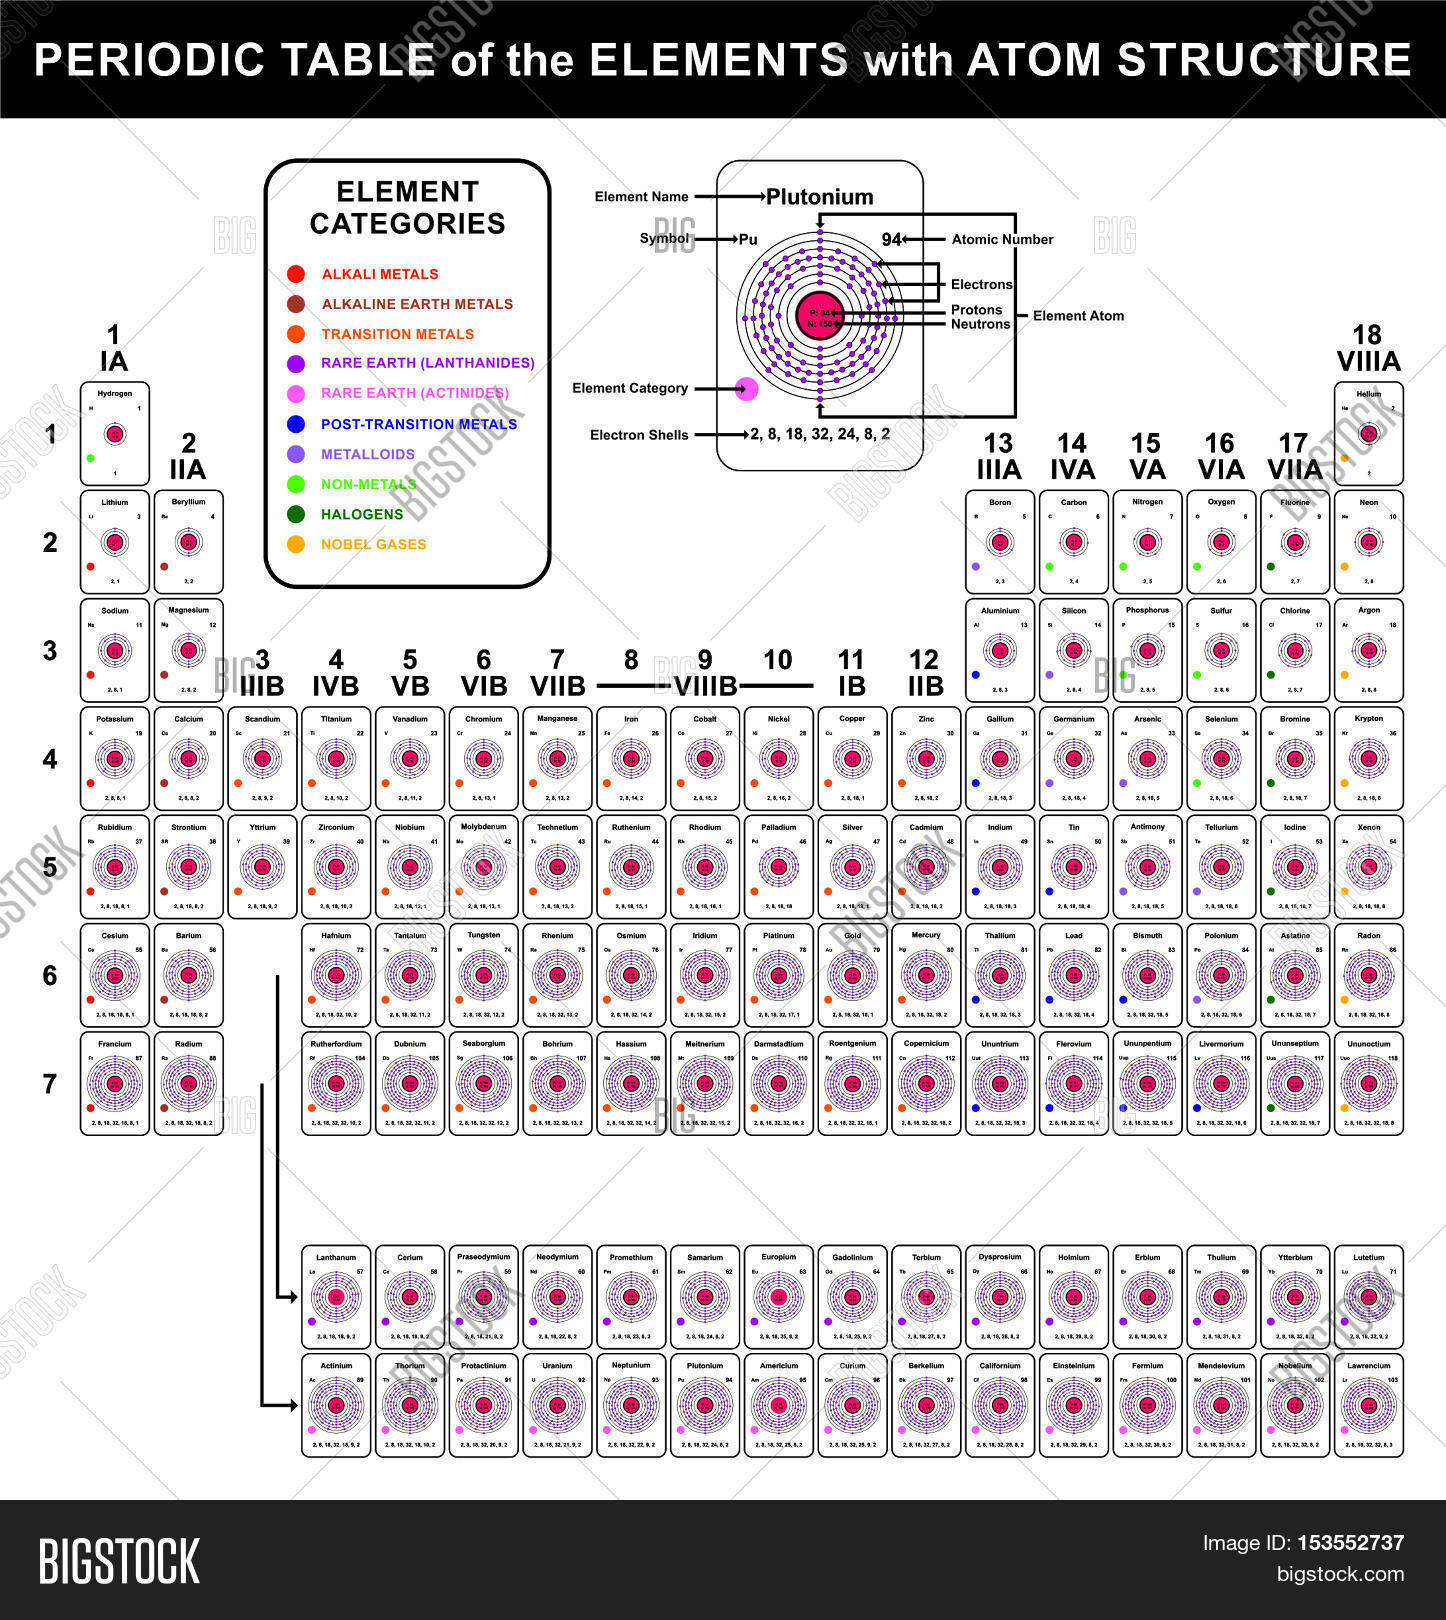 Periodic table image photo free trial bigstock periodic table of the elements with atom structure all elements atoms with distribution of electrons create a lightbox urtaz